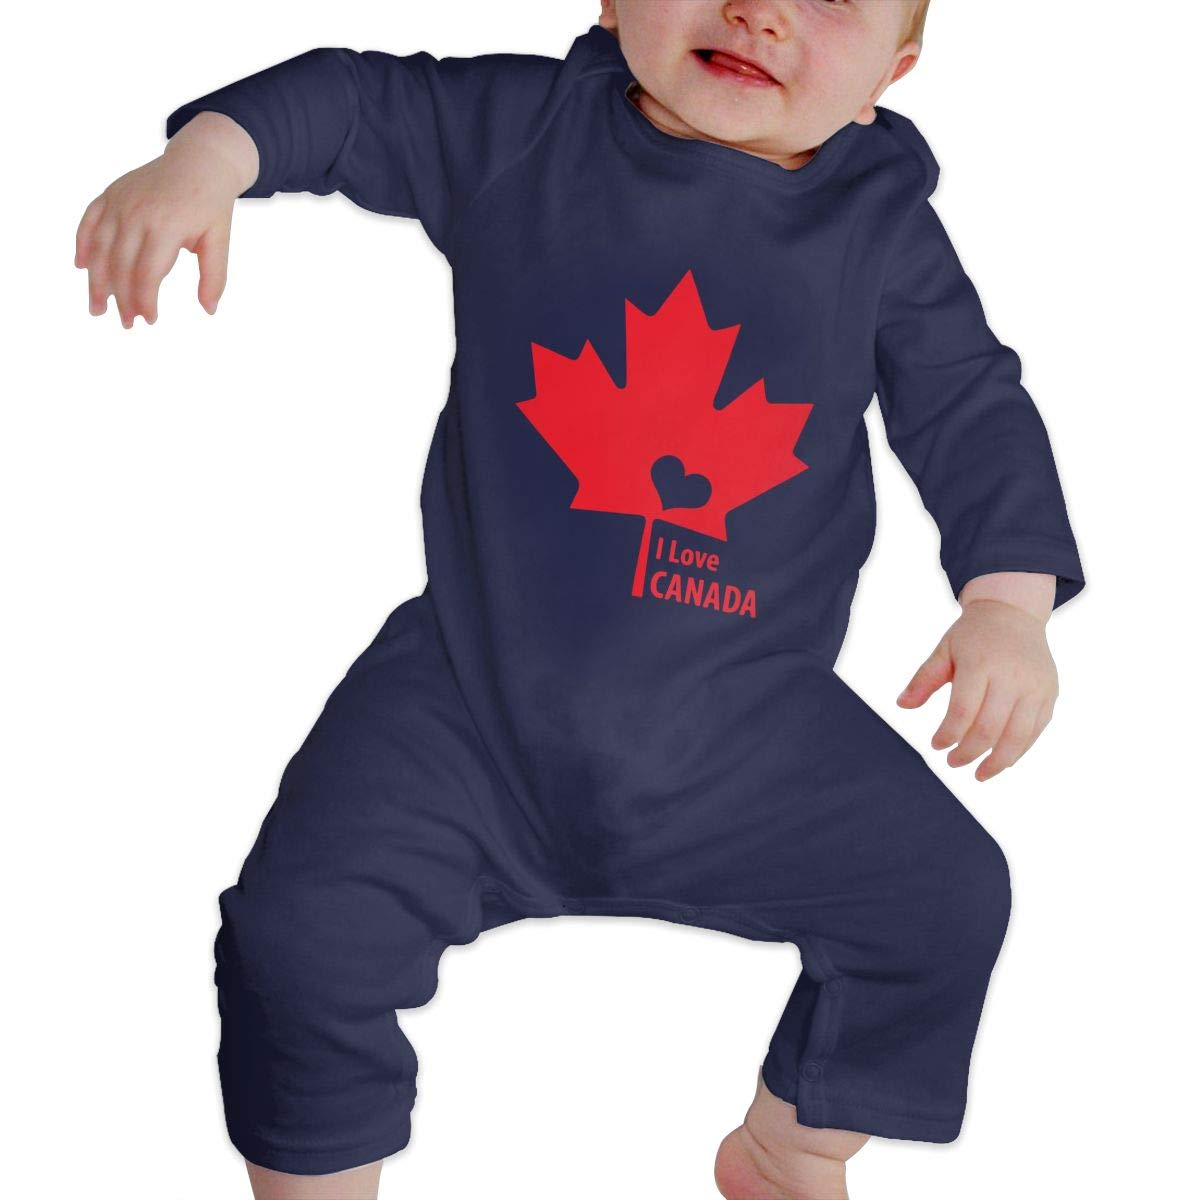 Suit 6-24 Months Toddler Round Collar I Love Canada Long Sleeve Bodysuits 100/% Cotton